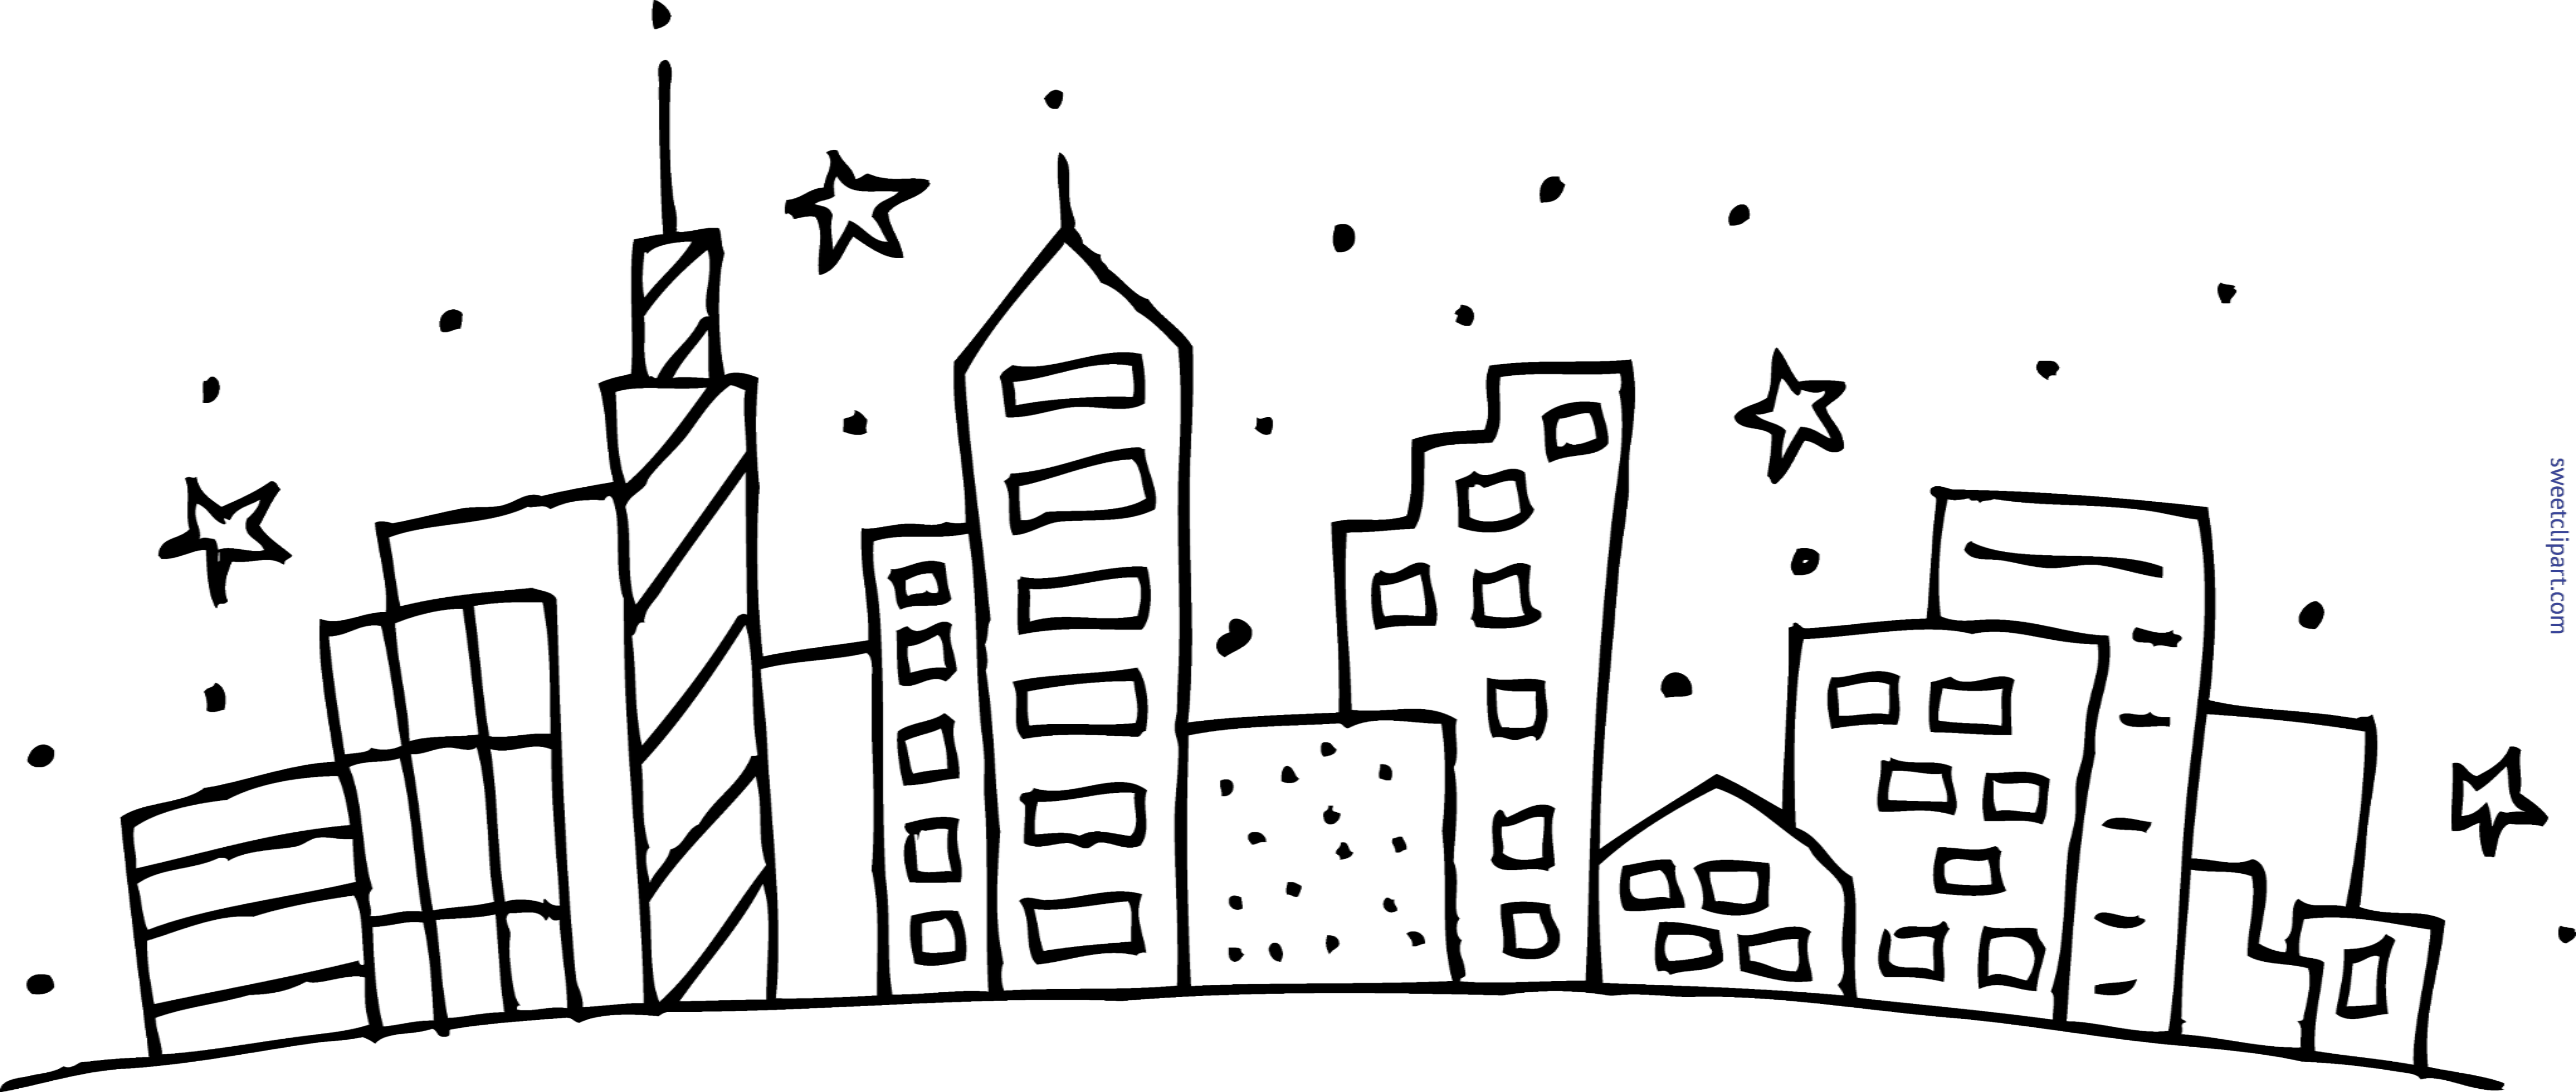 Scape drawing at getdrawings. City clipart simple